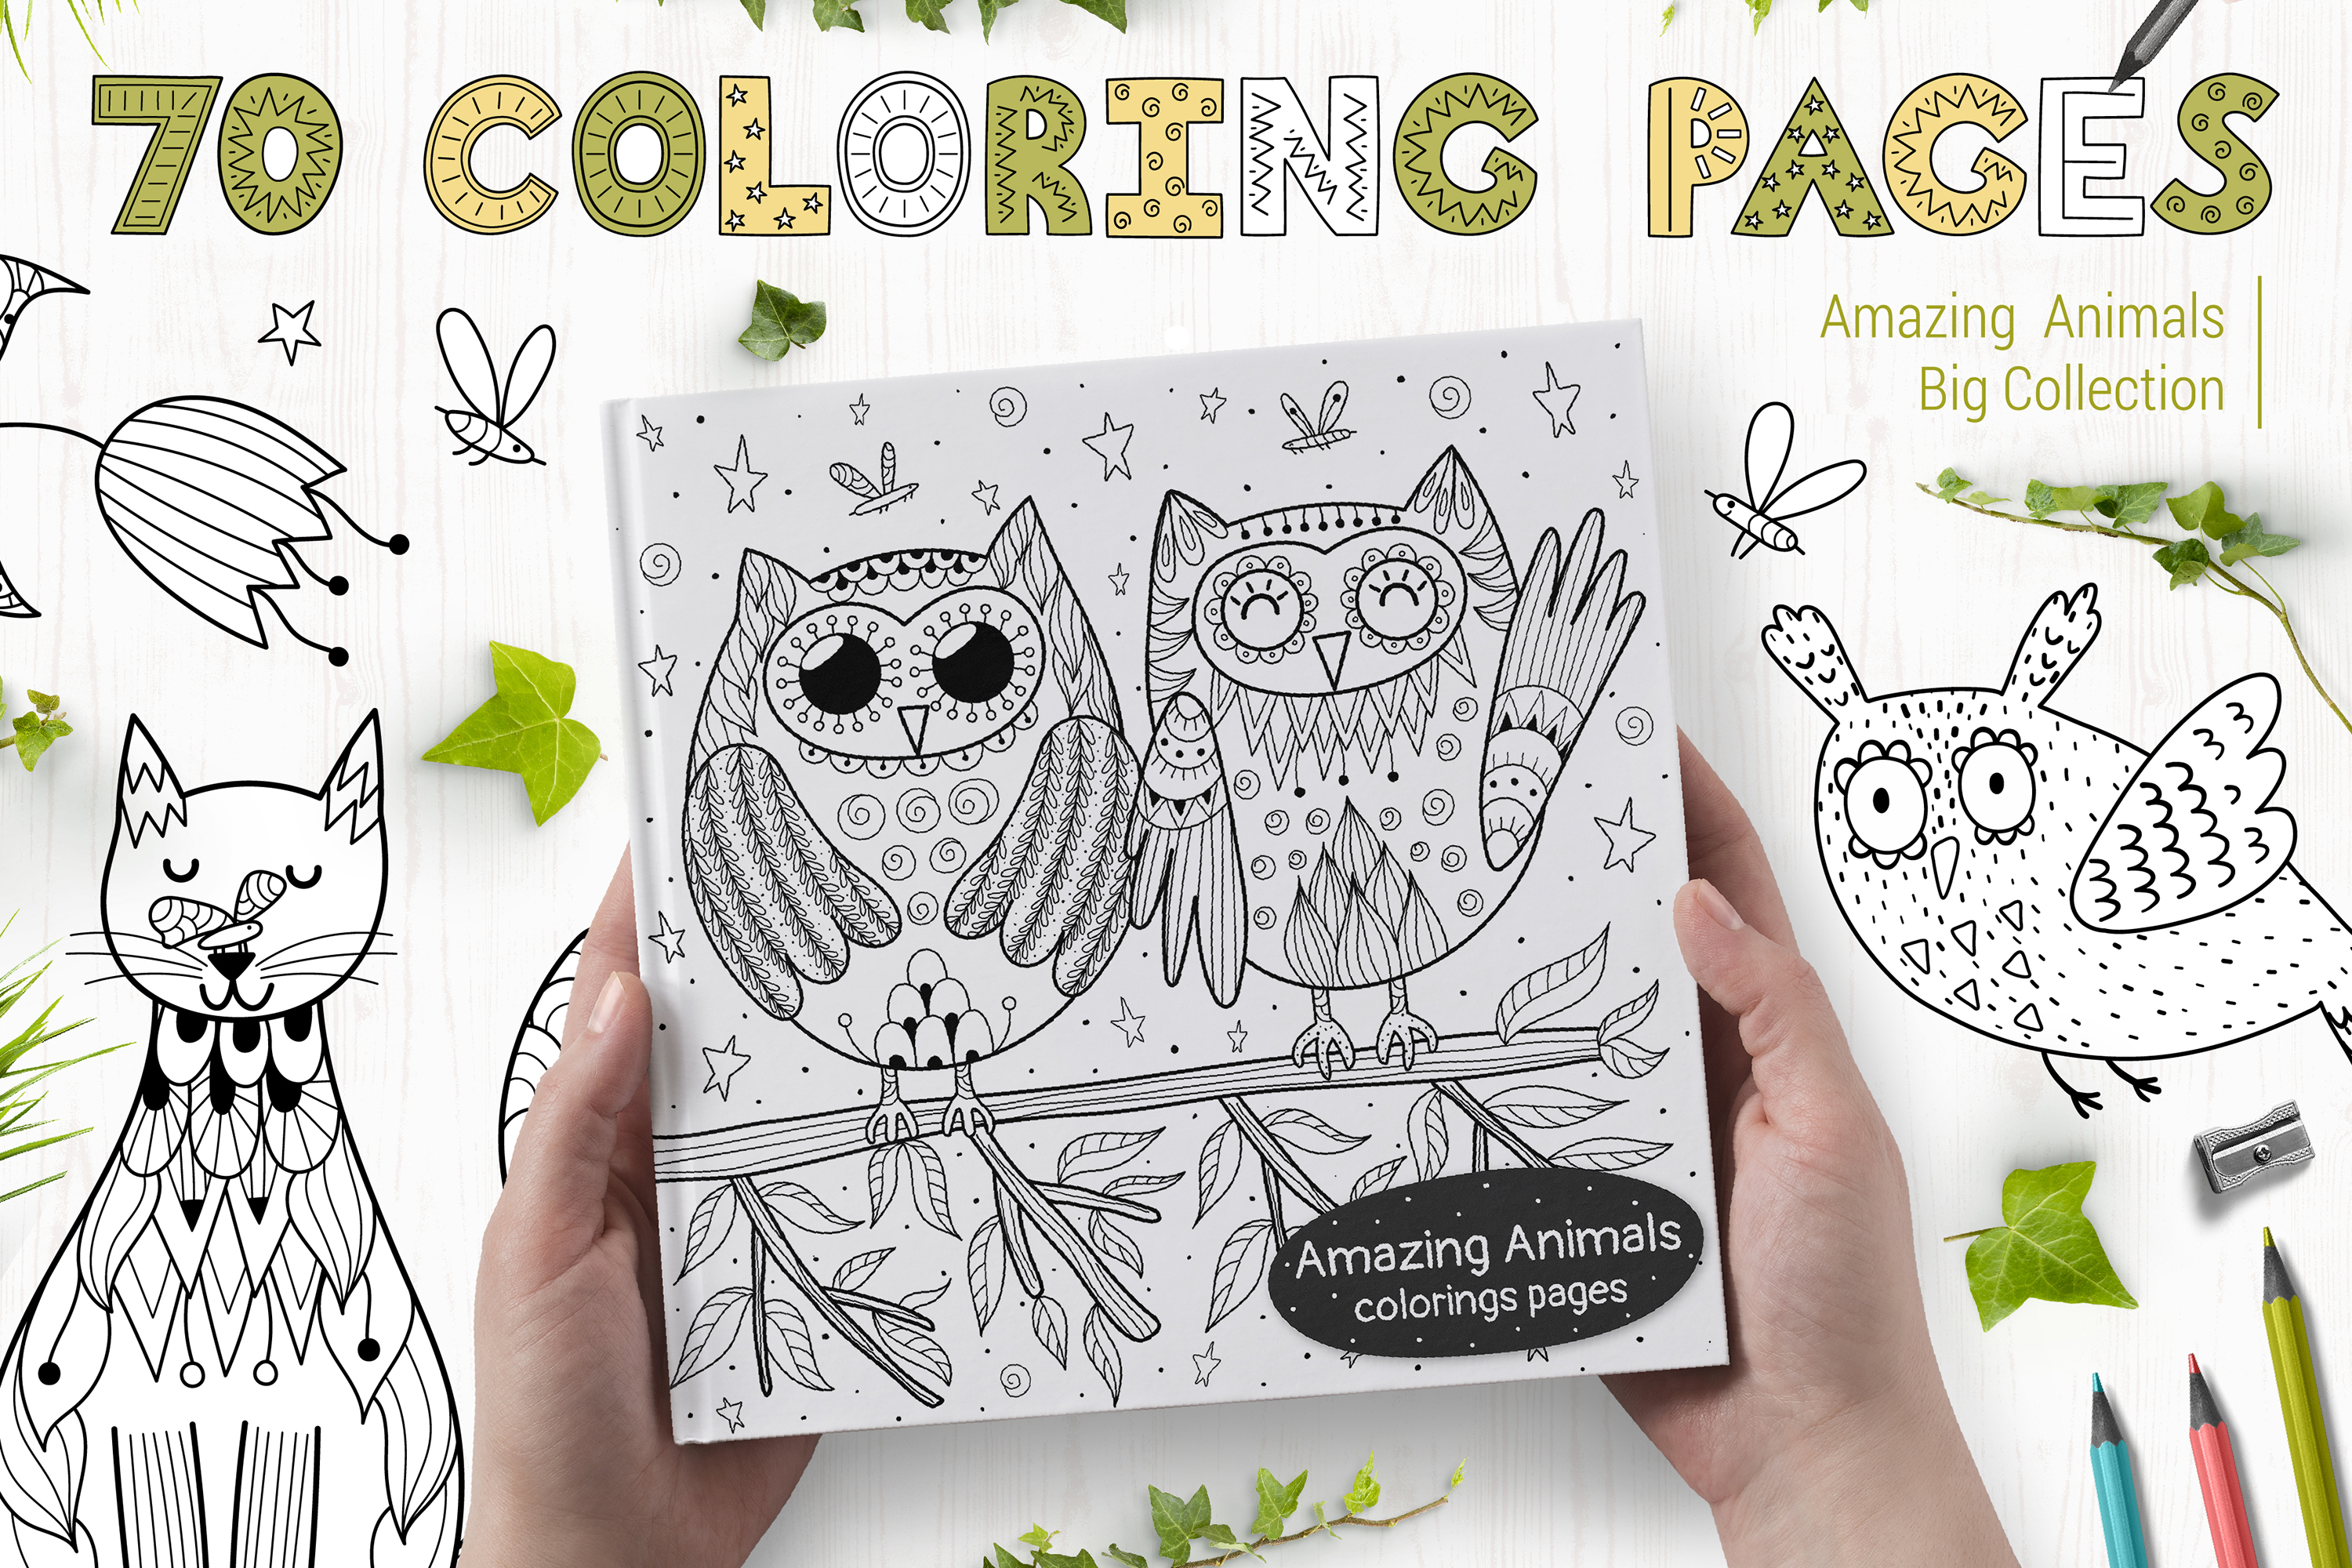 70 Coloring Pages Amazing Animals example image 1